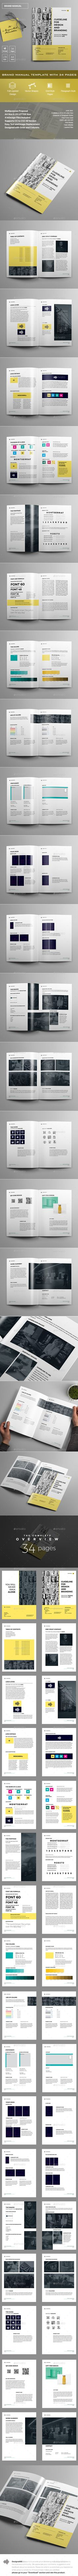 Exclusive Brand Manual Brochure Template InDesign INDD